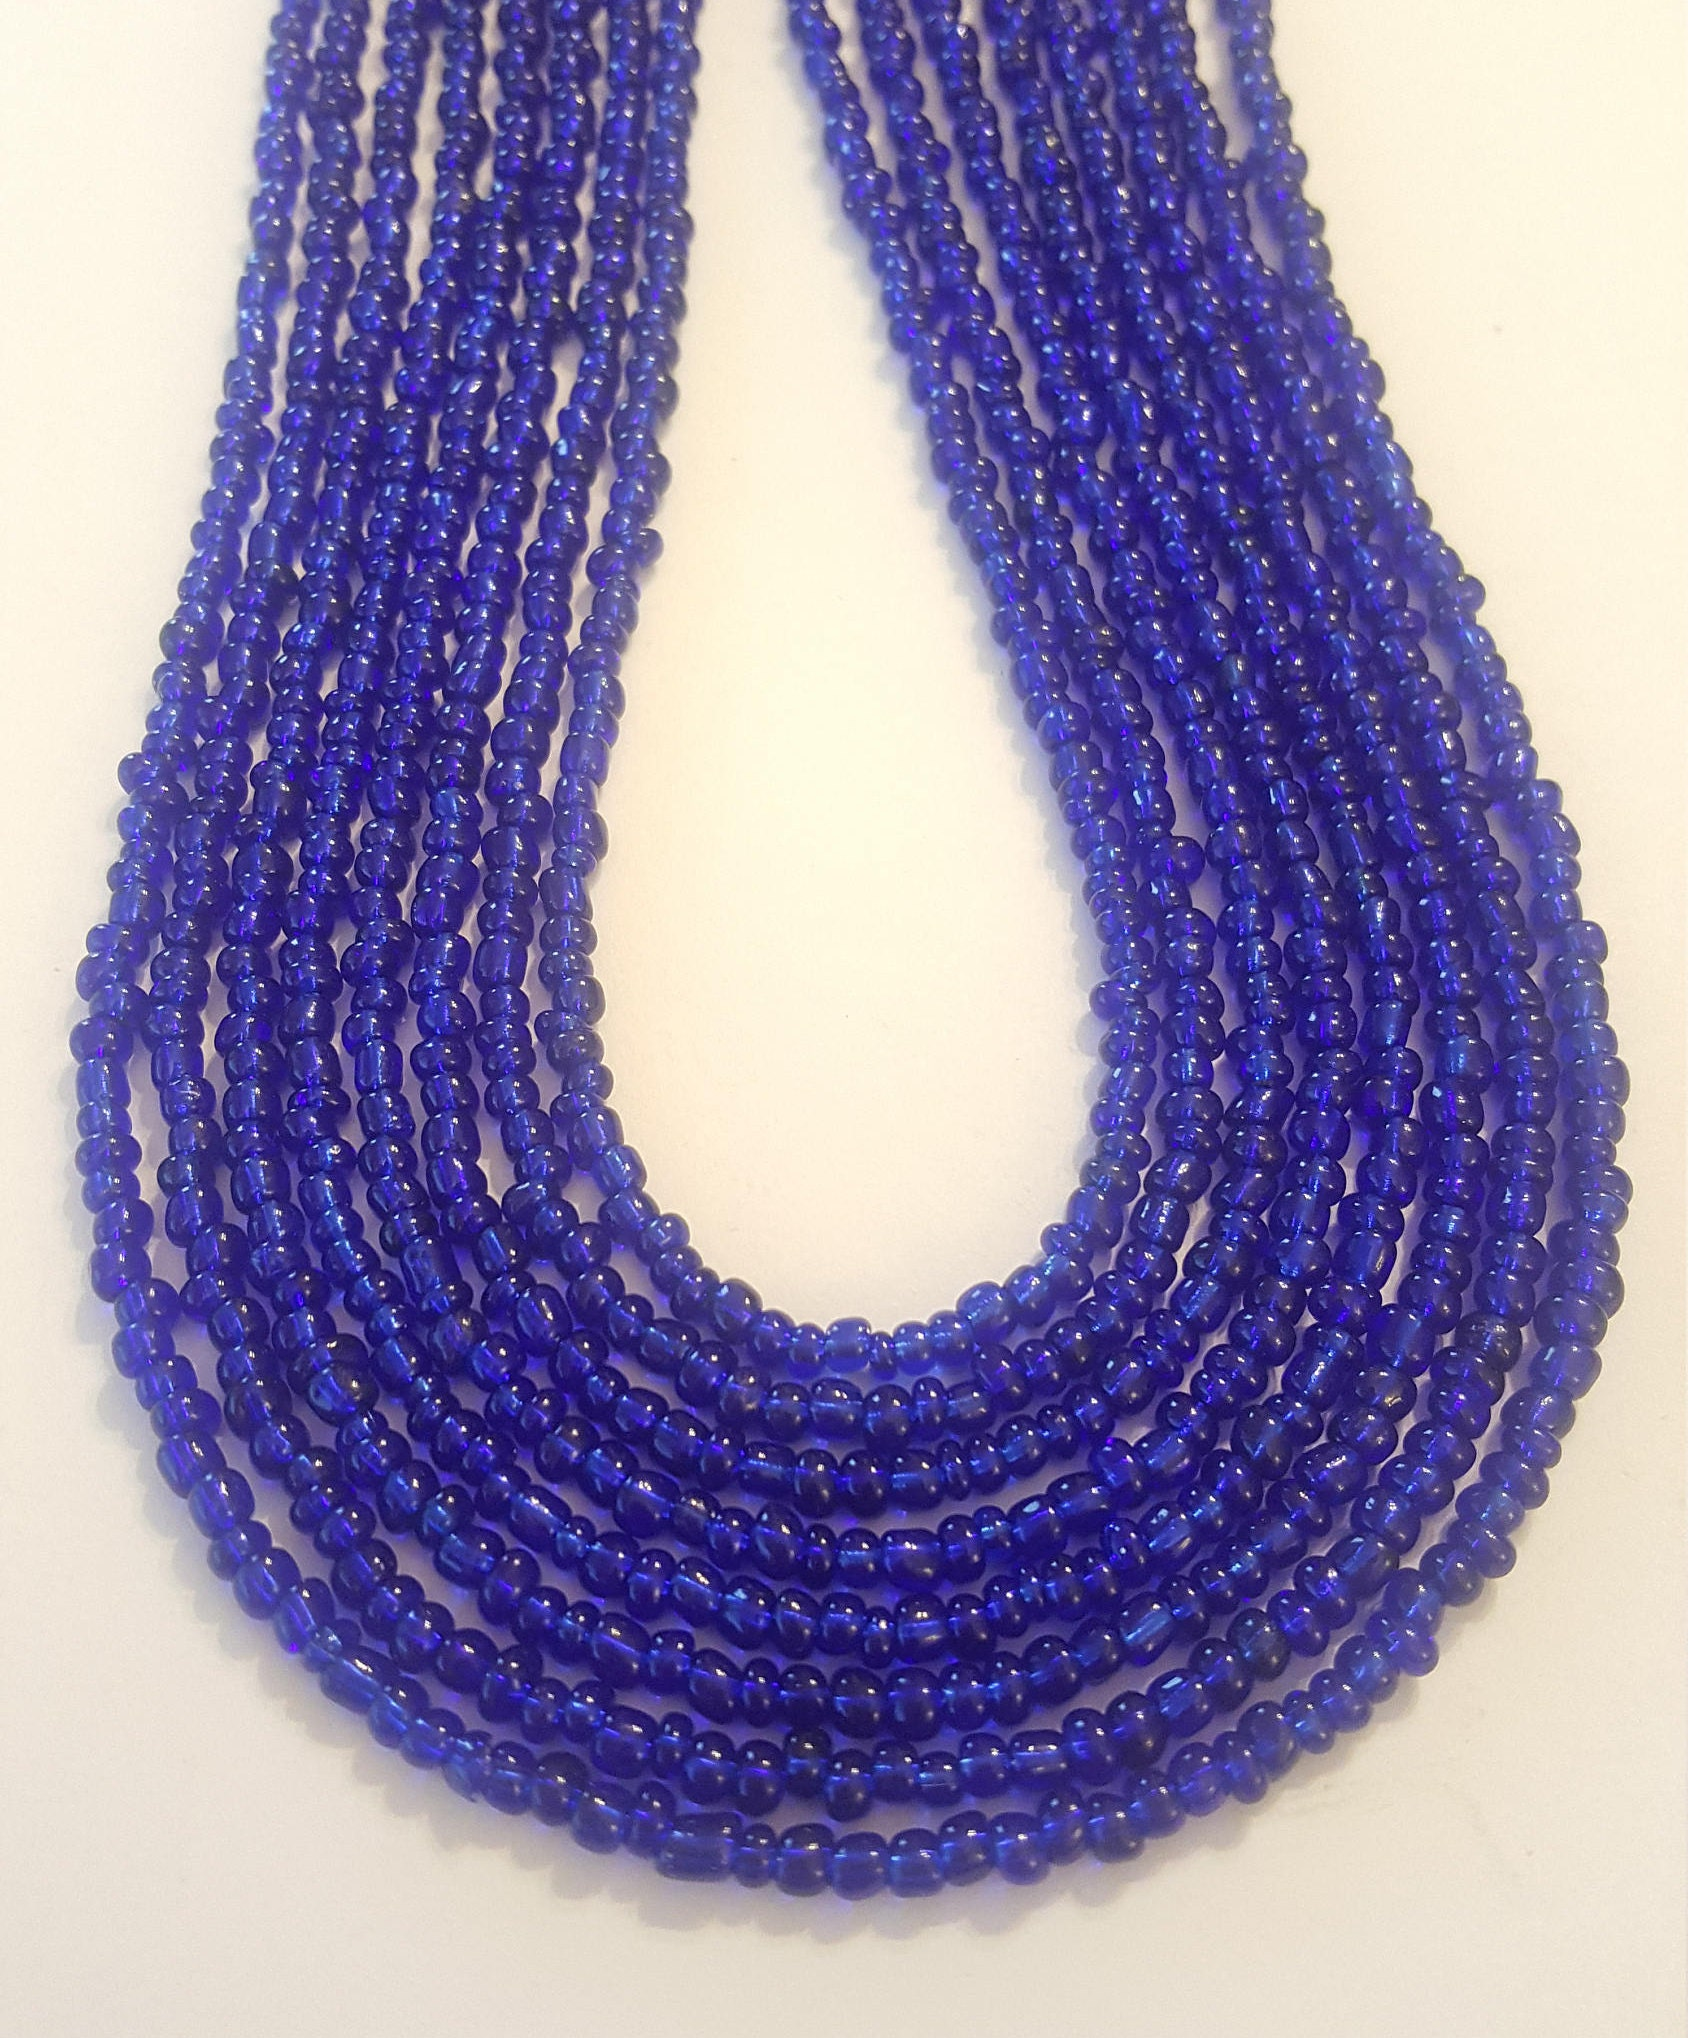 bead product jane and by of beads necklace artist made blue ceramic coral